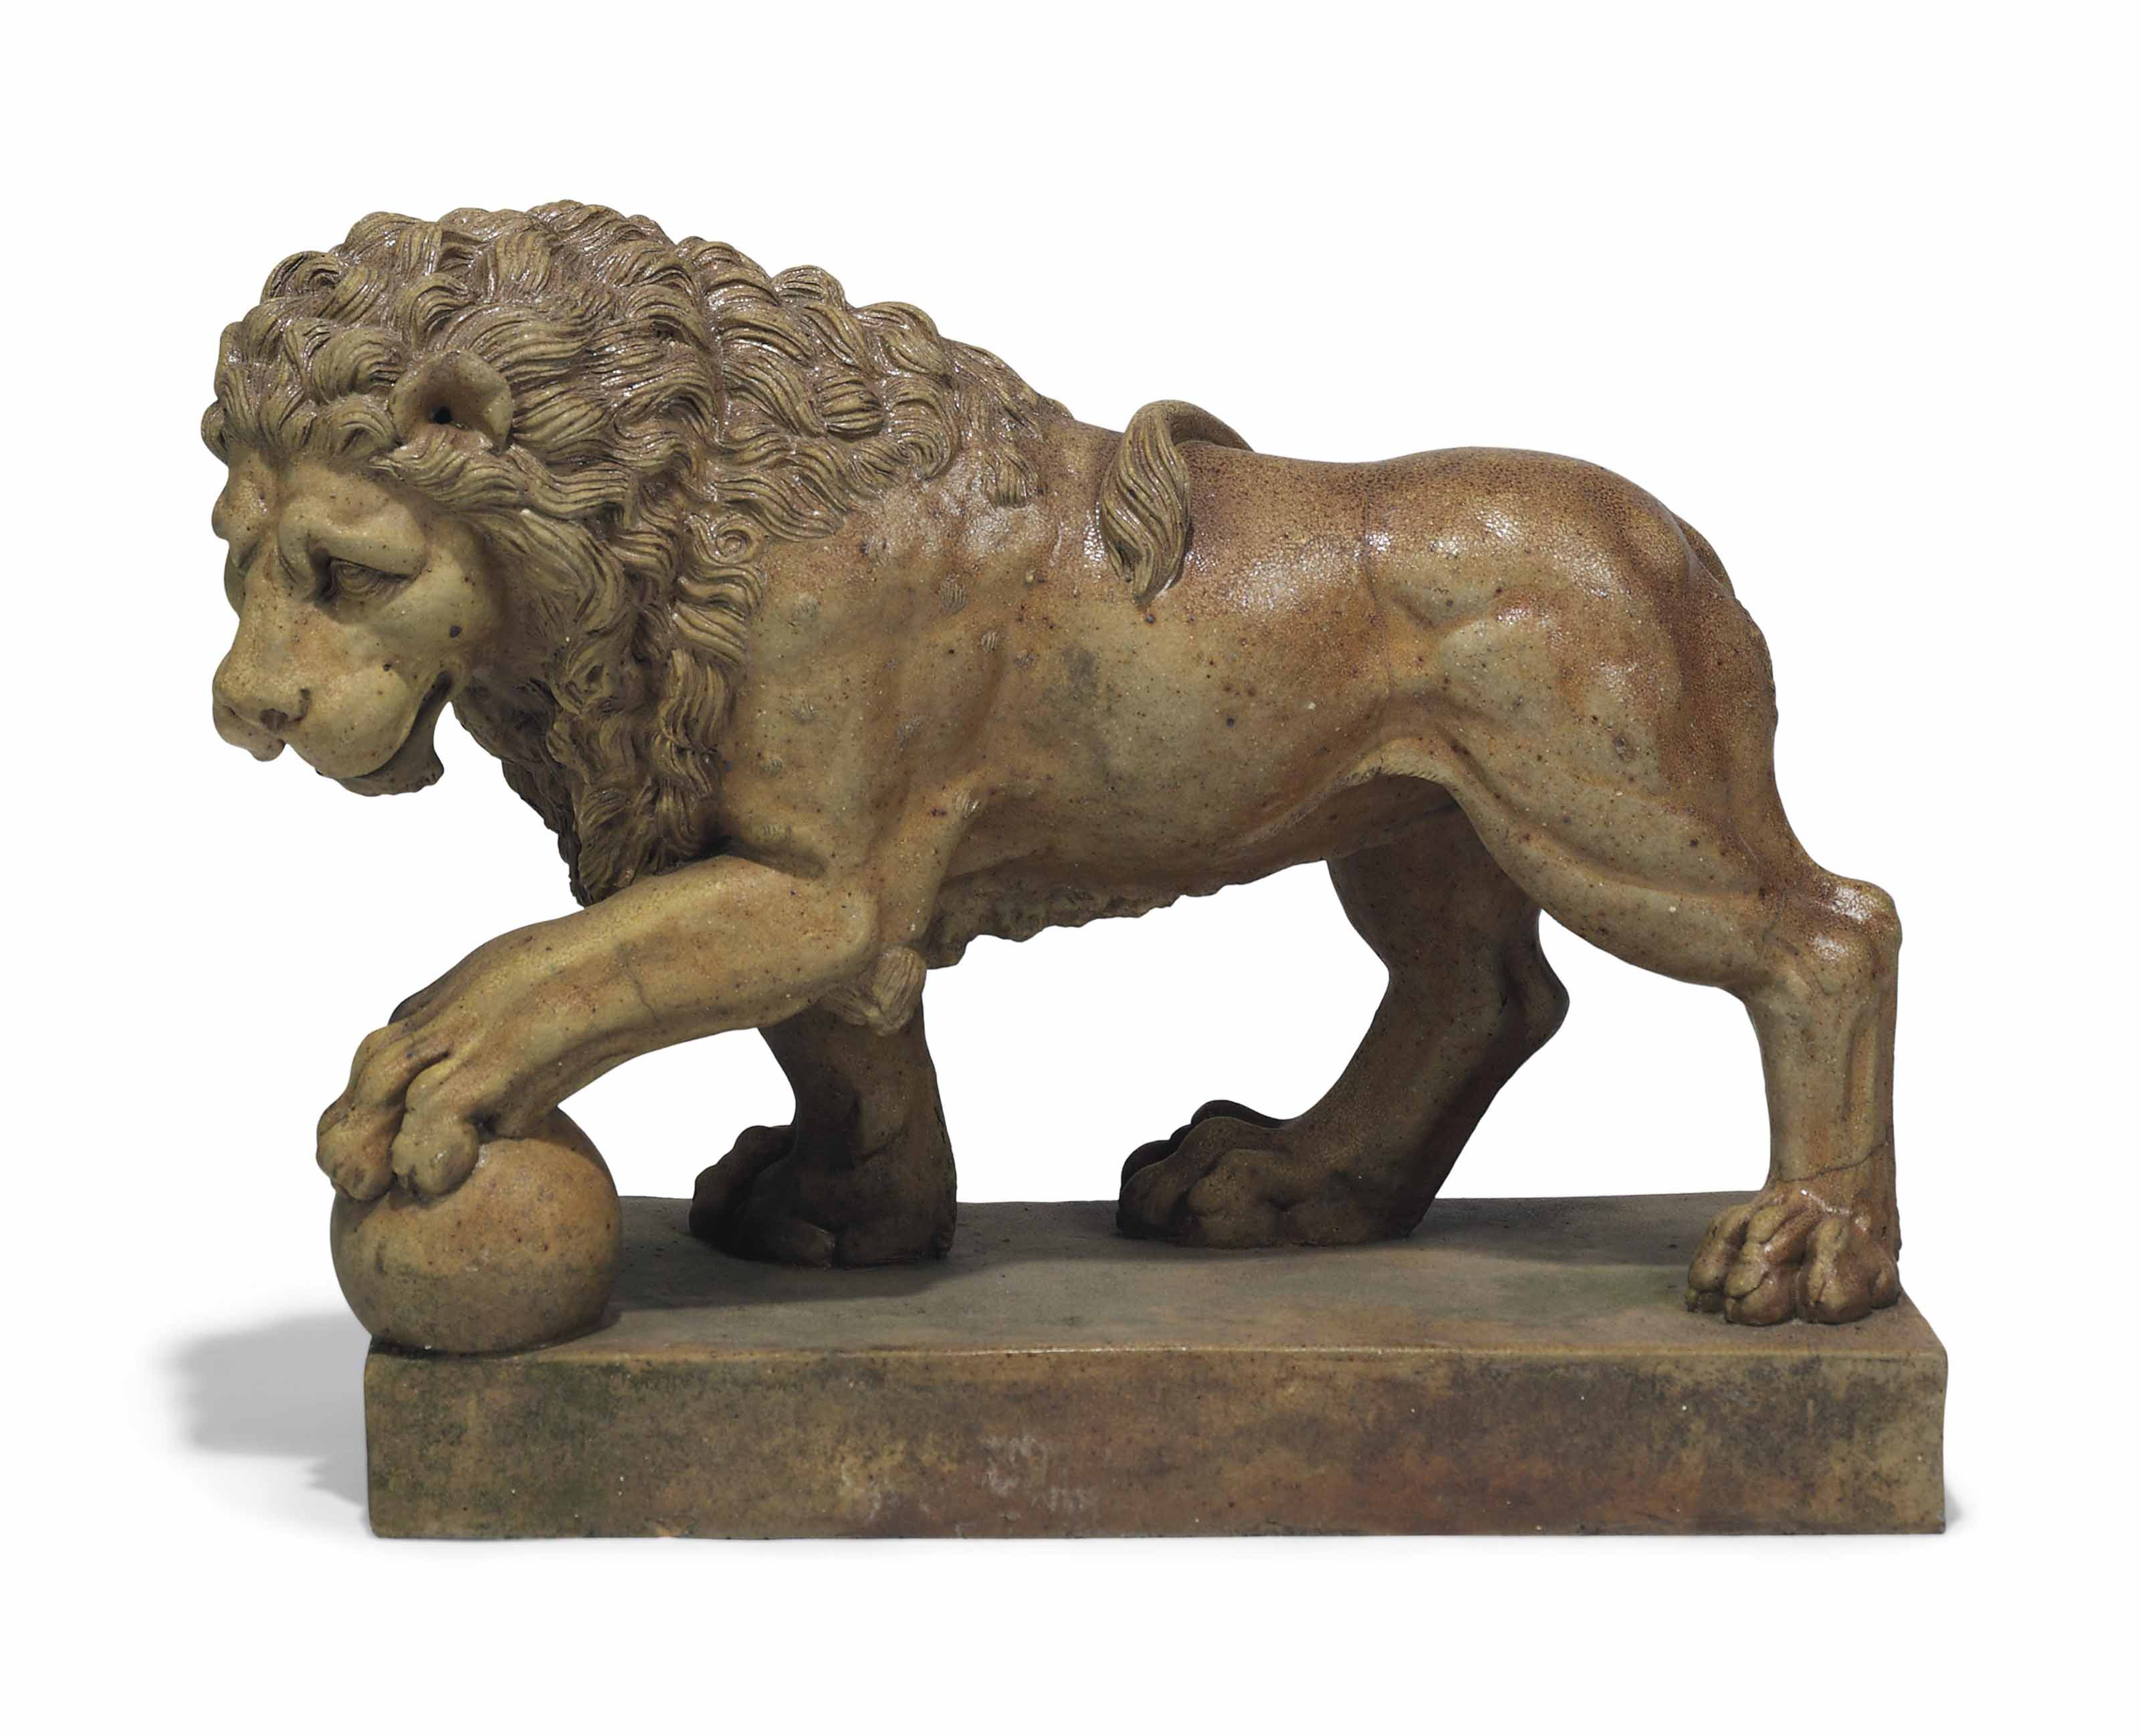 A FRENCH STONEWARE MODEL OF THE MEDICI LION